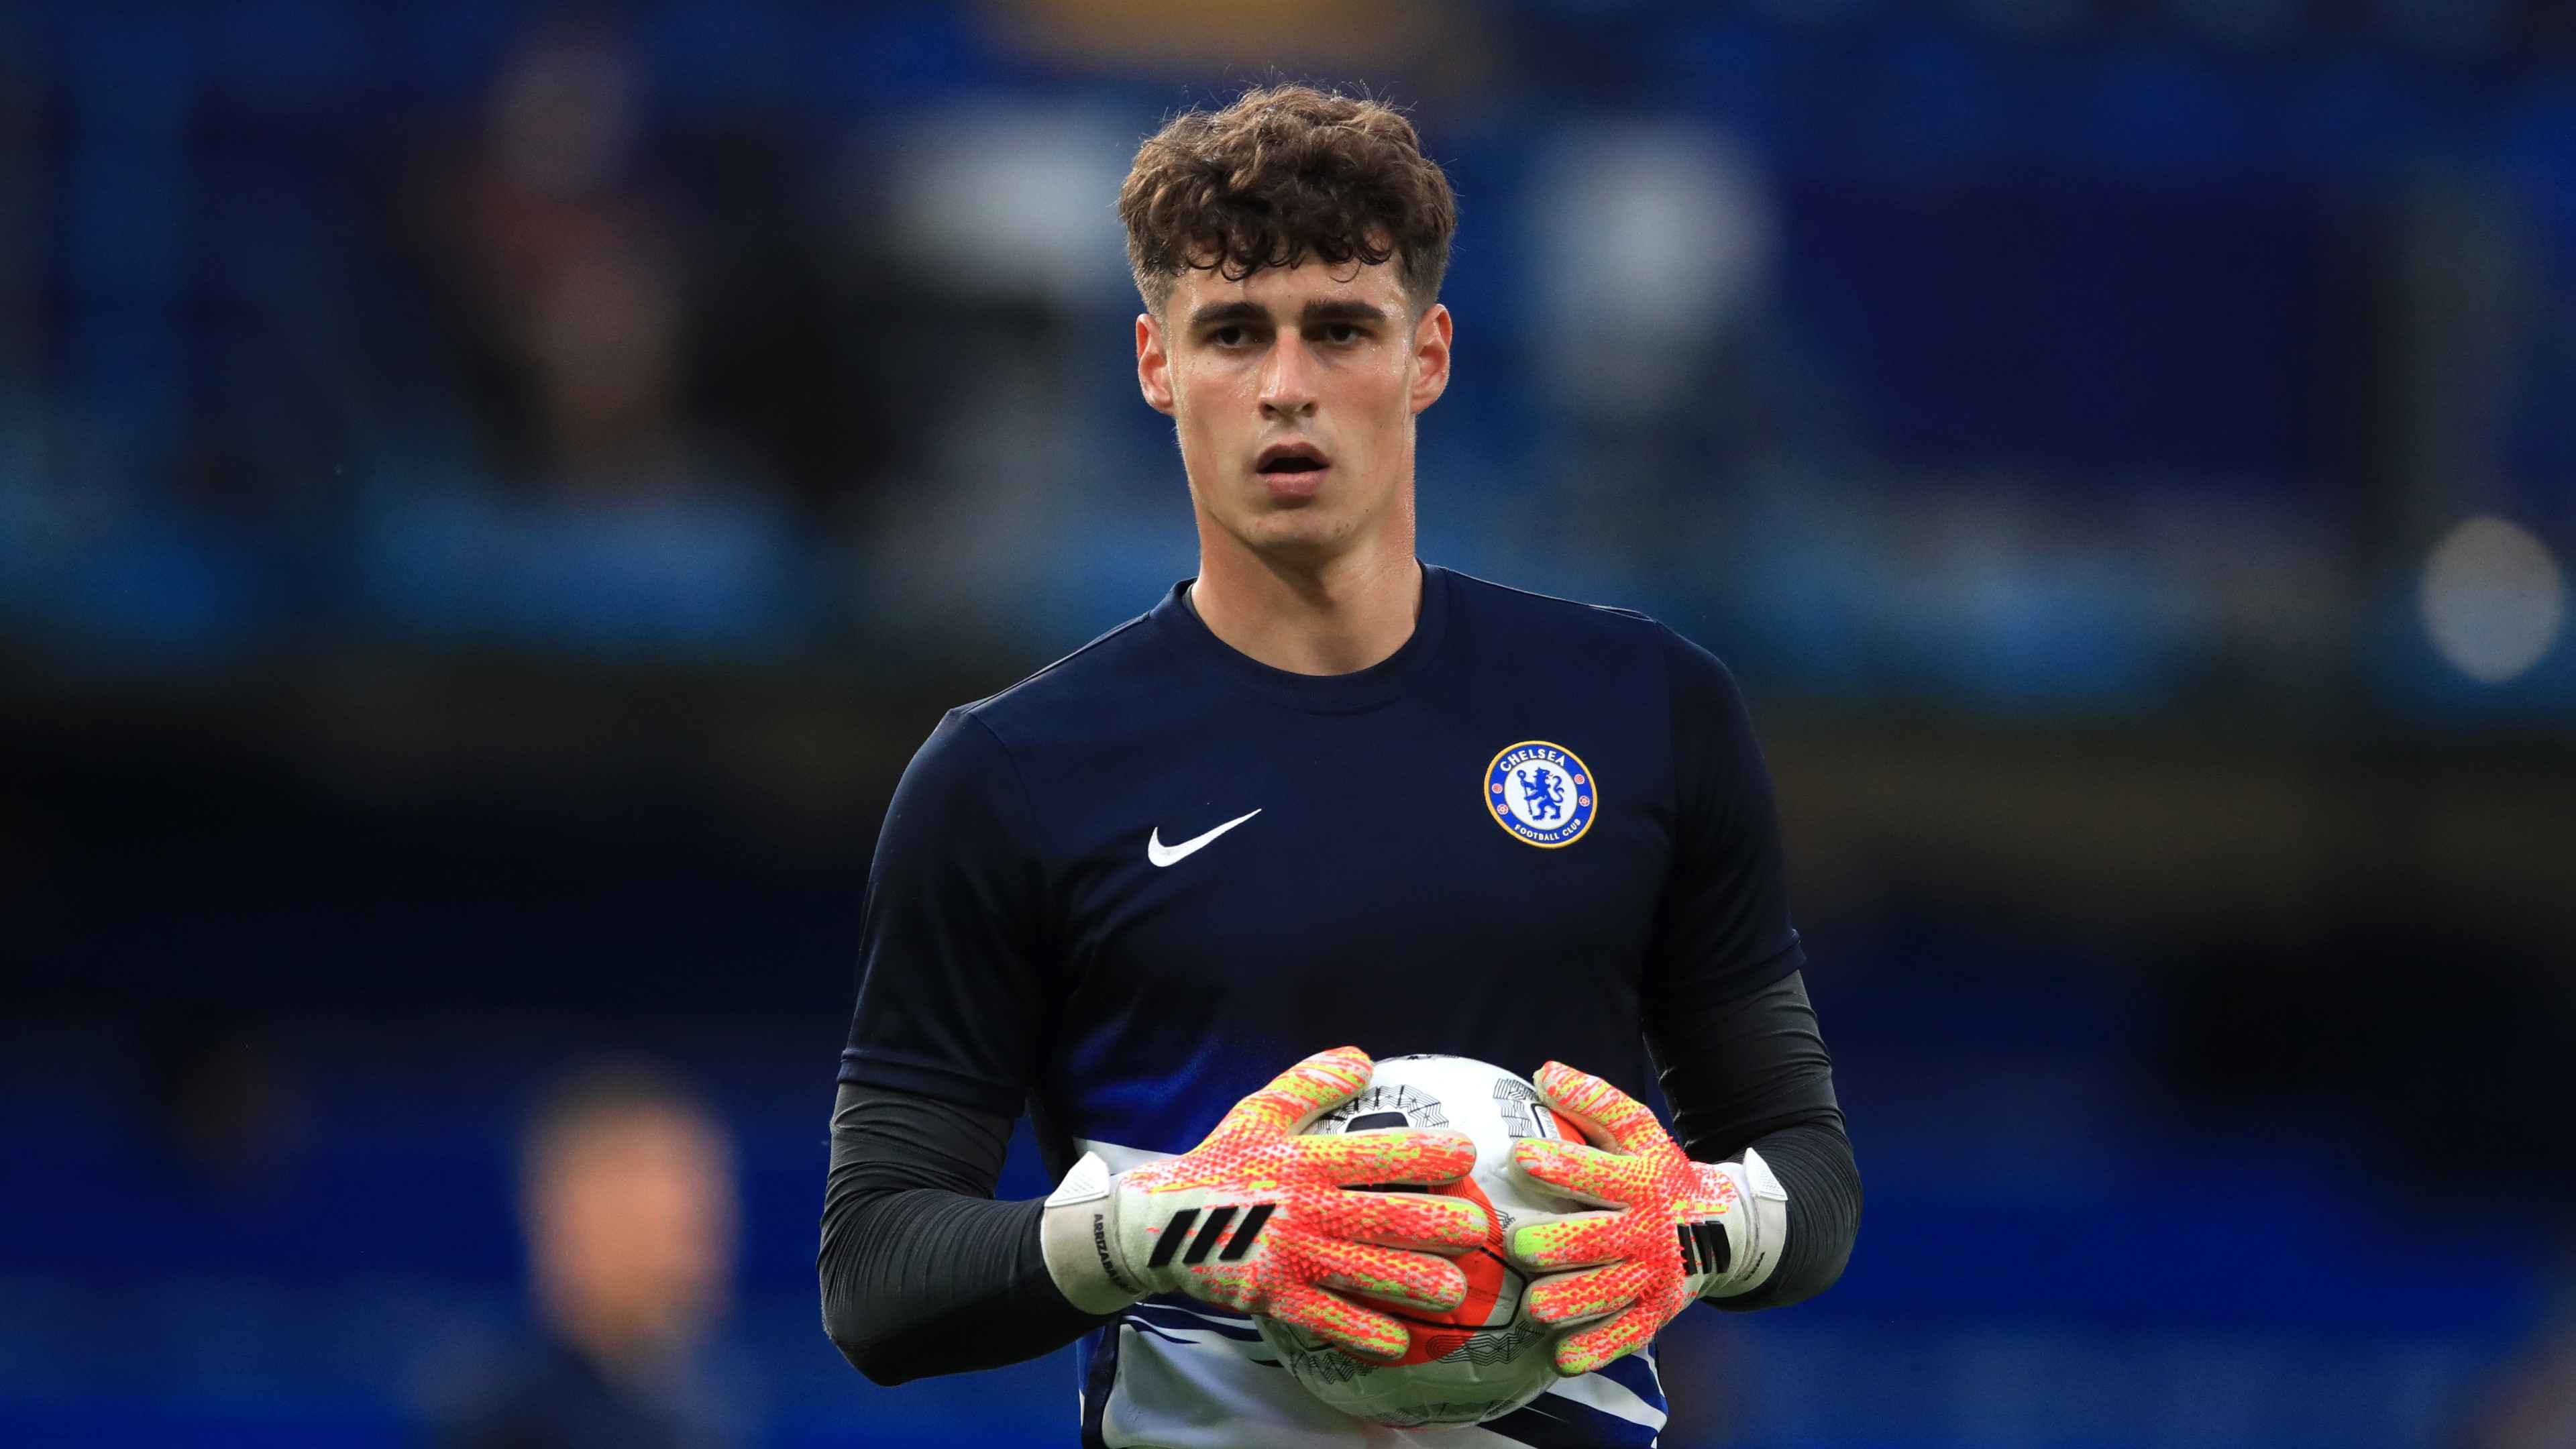 Transfer news and rumours LIVE: Chelsea to send Kepa out on loan